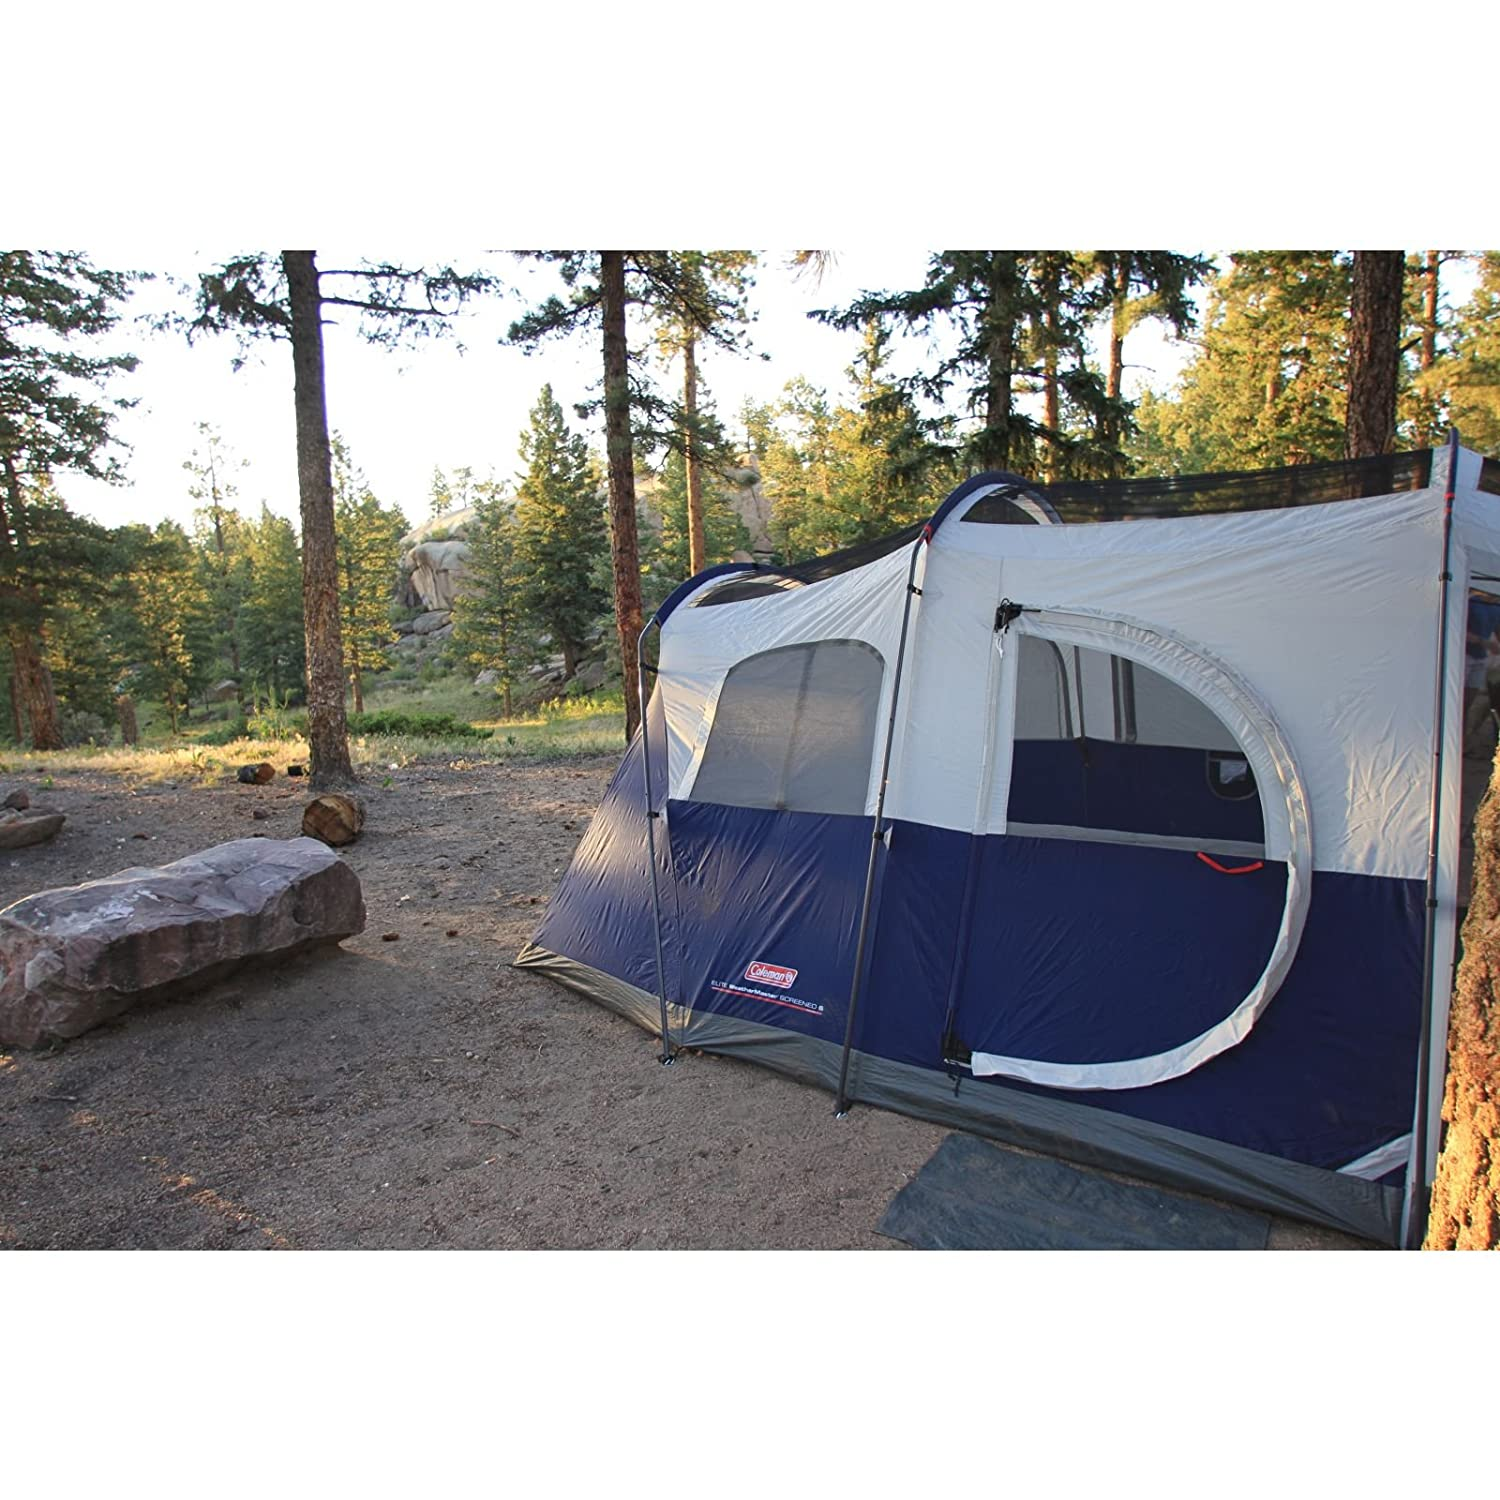 Coleman Elite WeatherMaster 6 Screened Tent – Best 6 person tent with vestibule